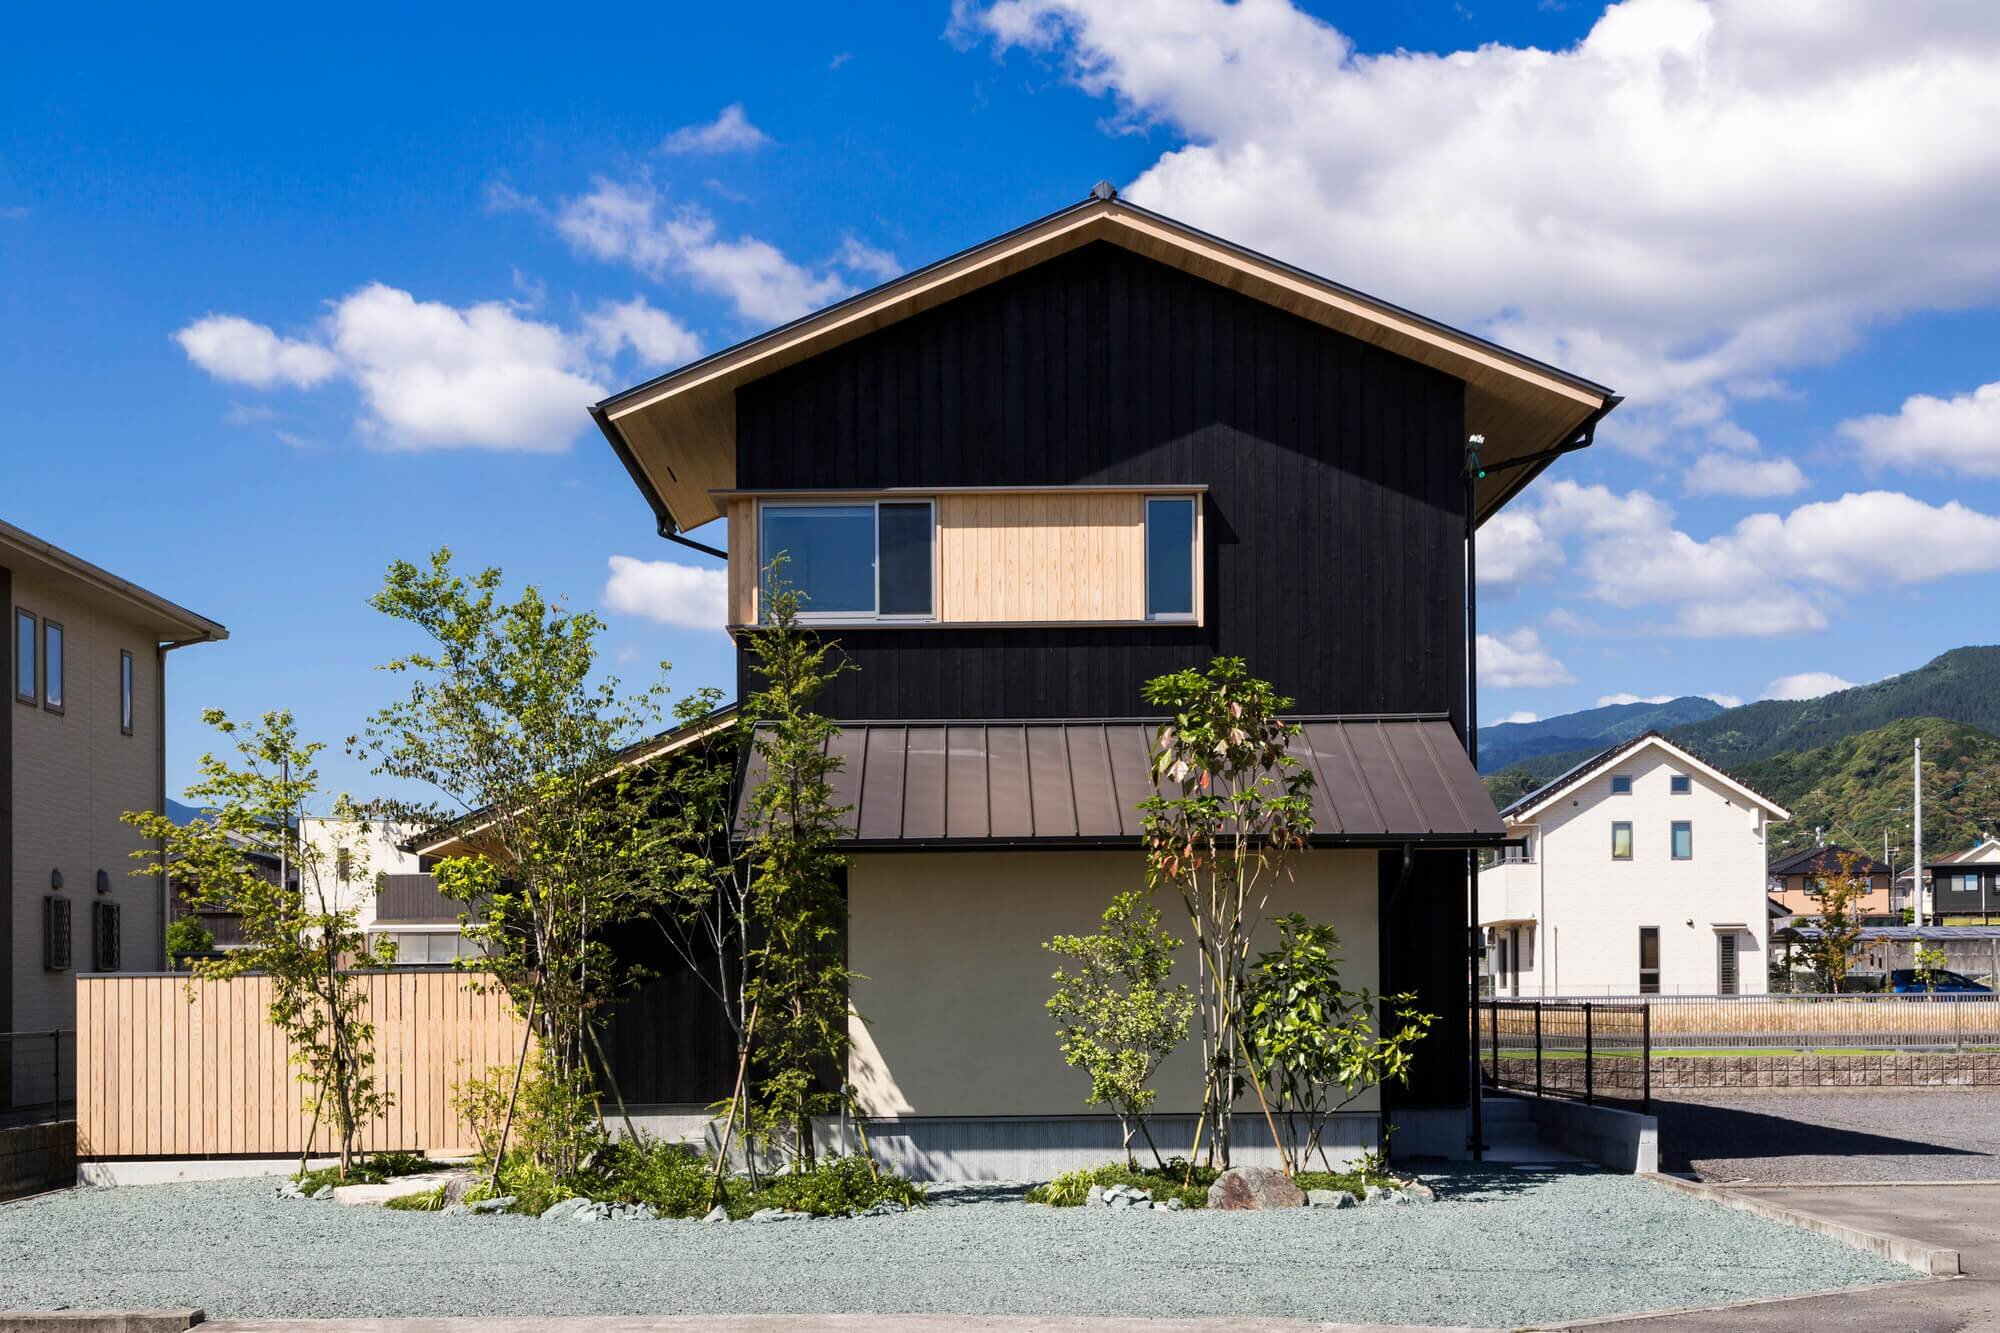 Japan Home Plans Takashi Okuno Designs A House That Allows The Owners To